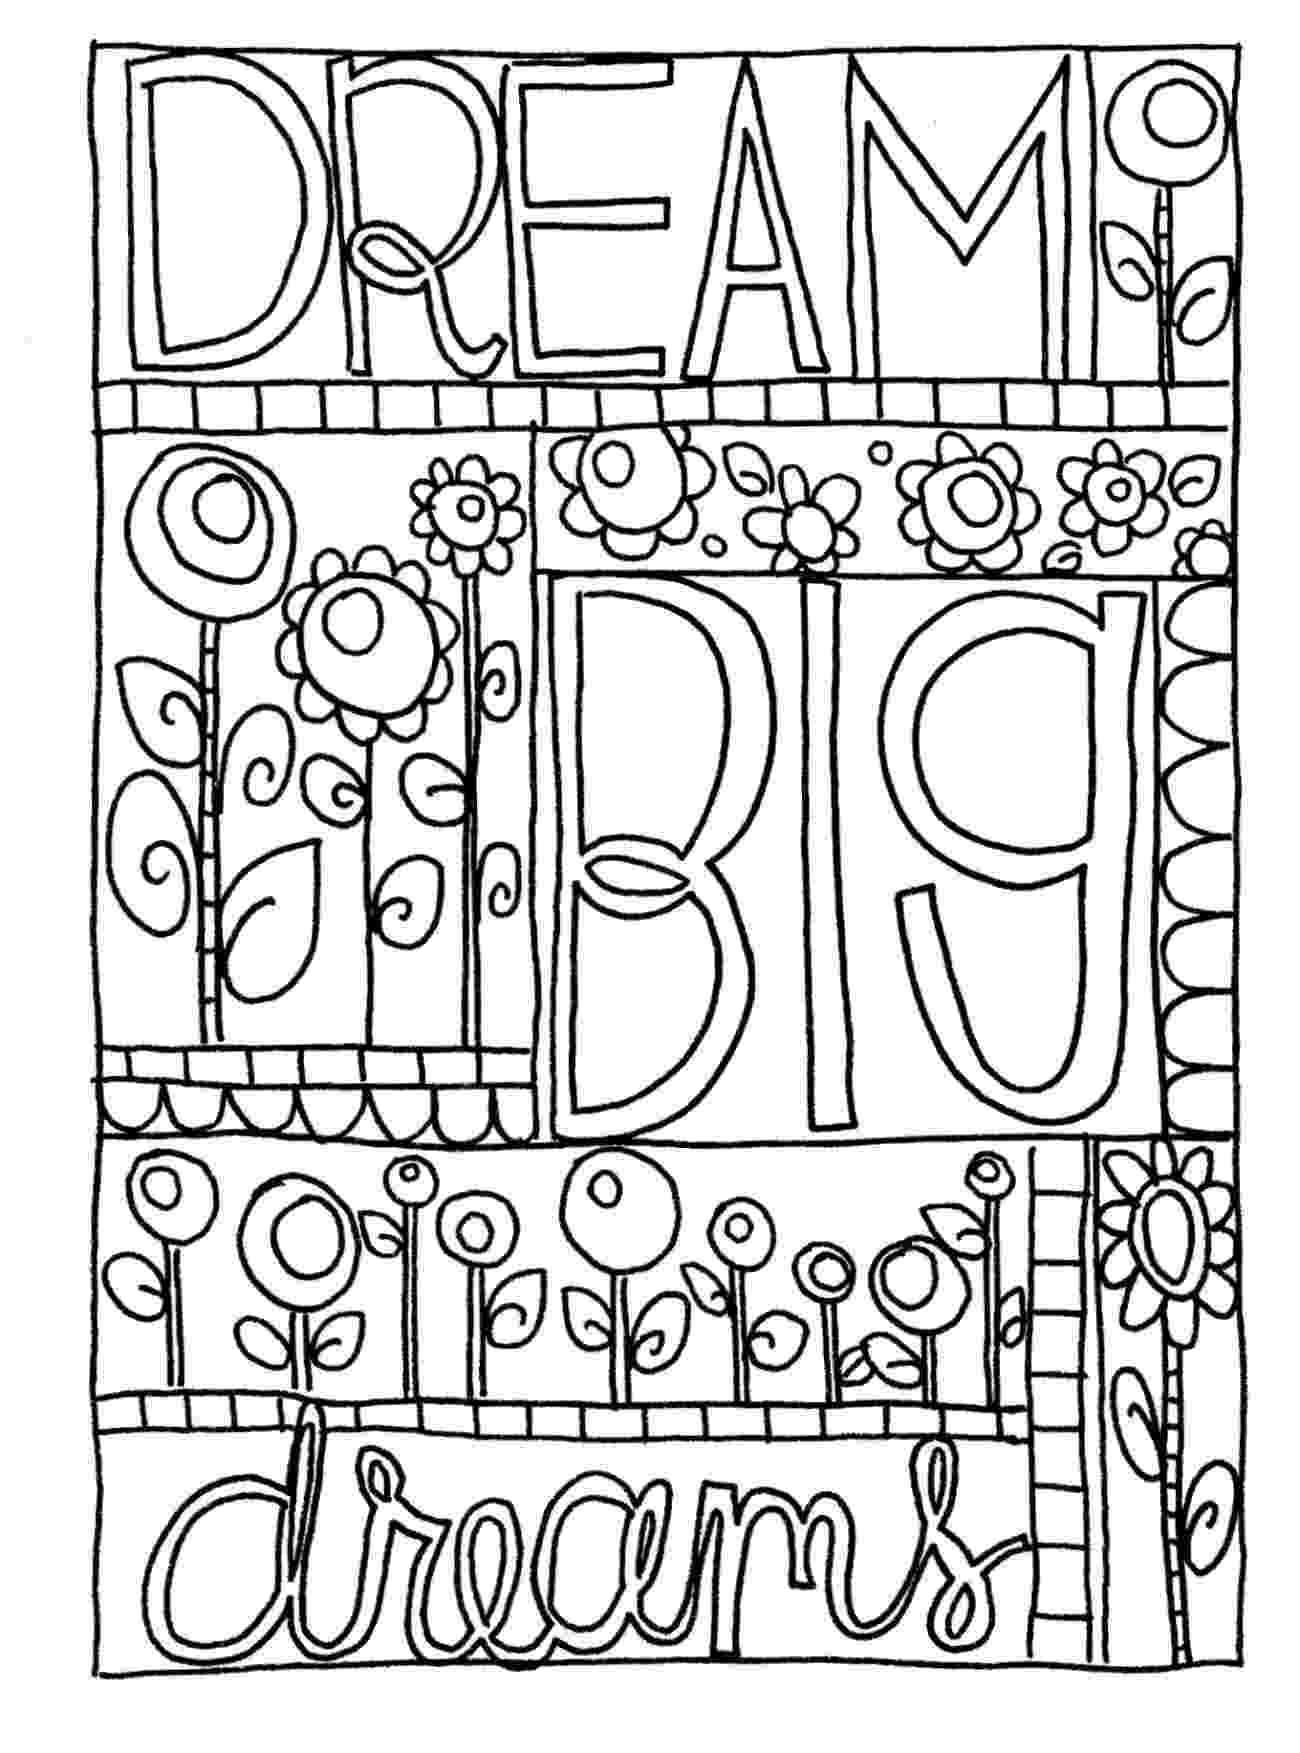 doodle art free printables awesome and free printable doodle art coloring pages doodle free printables art